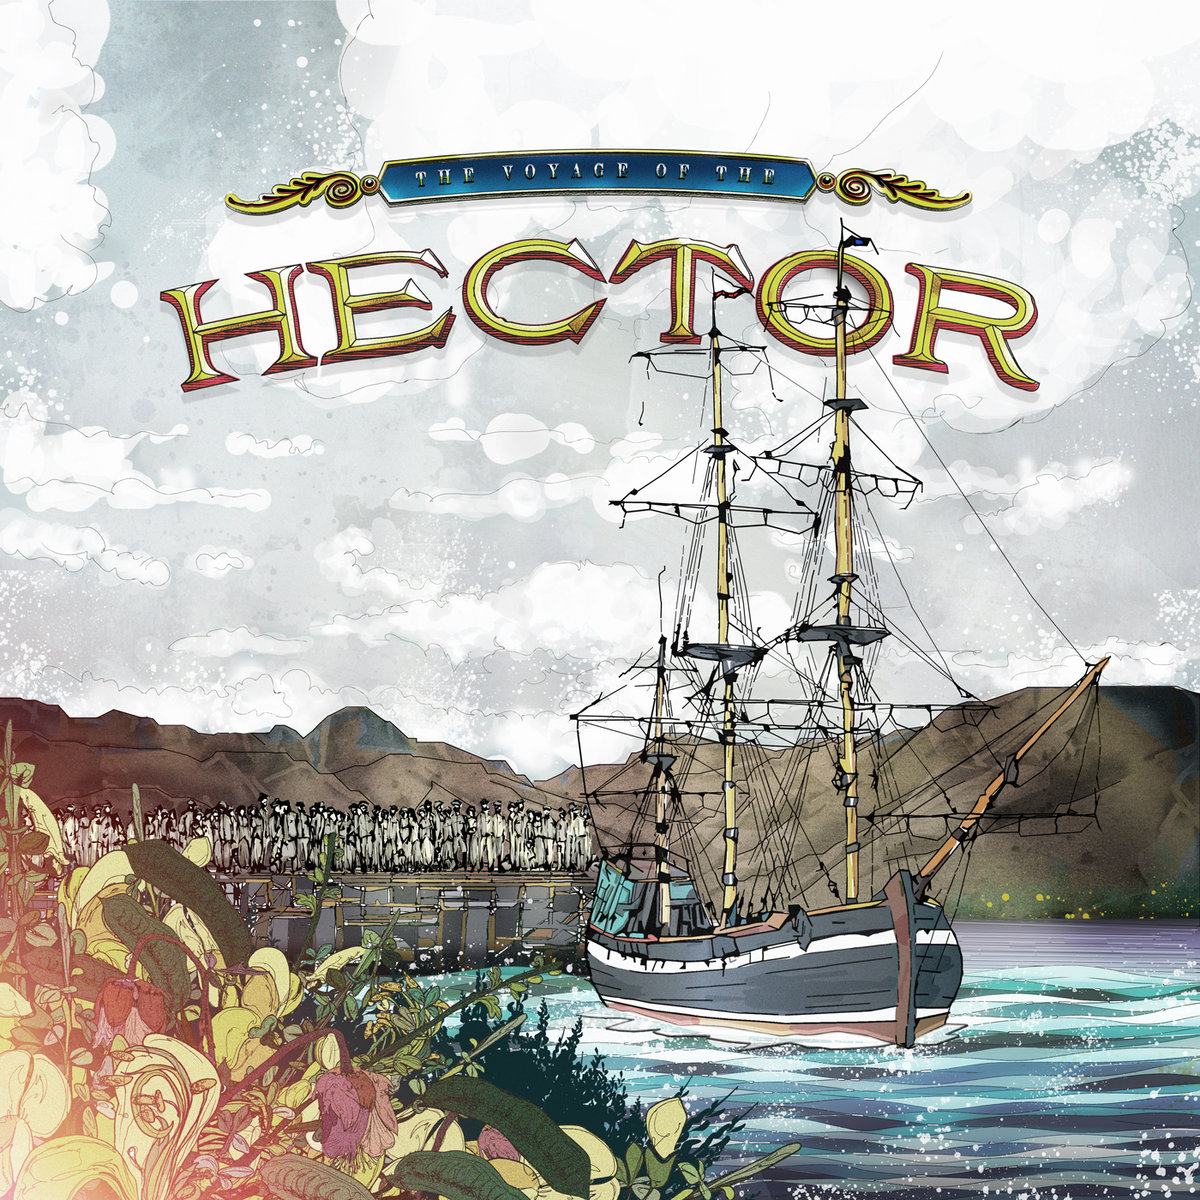 Voyage of the Hector – Fèis RoisCommission by John Somerville